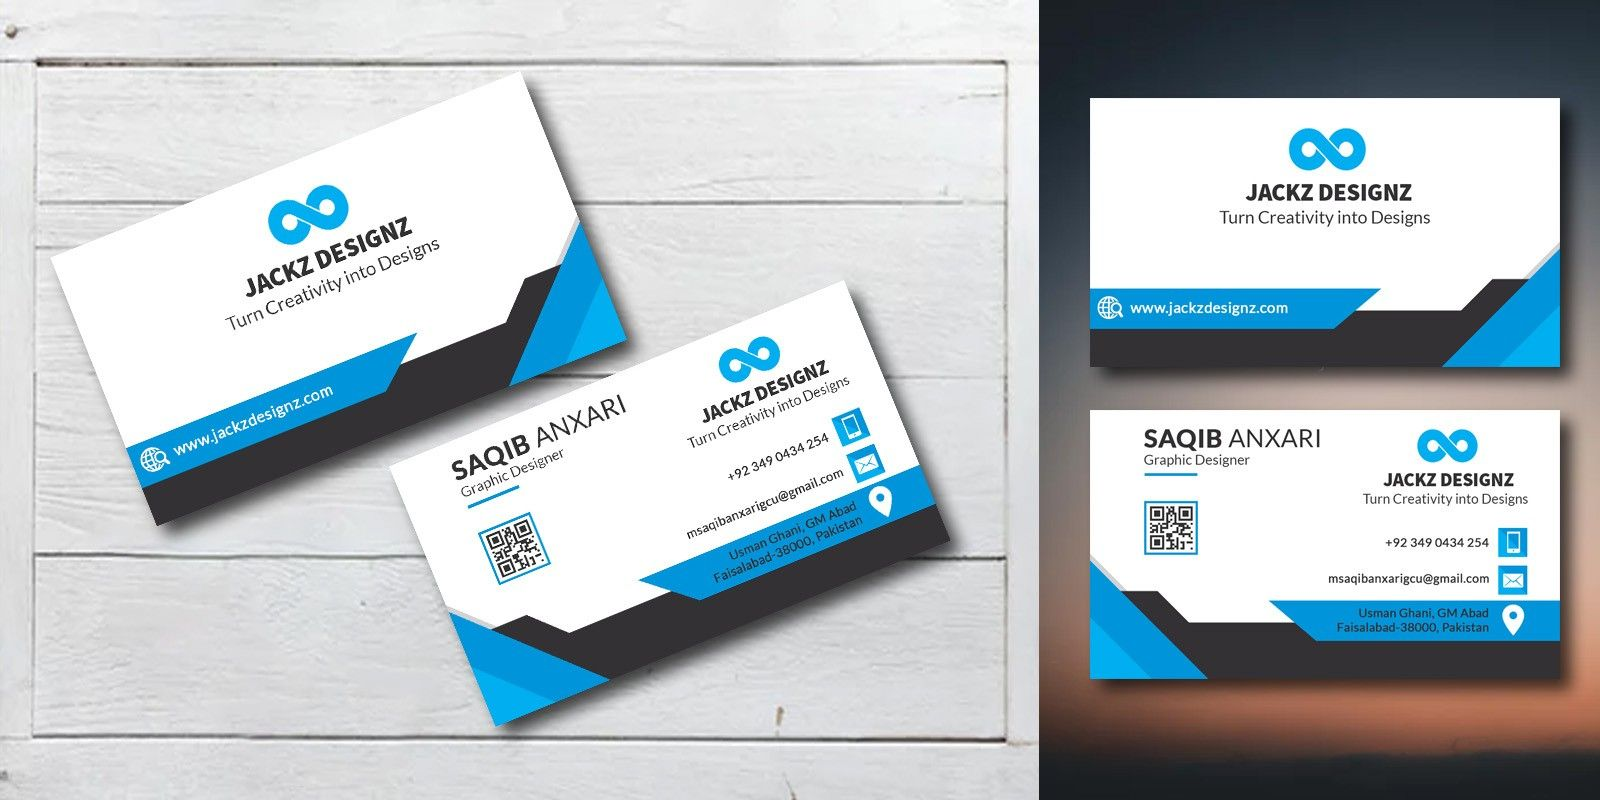 019 Template Ideas Business Card Design Free Psd On Behance Within Designer Visi Free Business Card Design Free Business Card Templates Visiting Card Templates